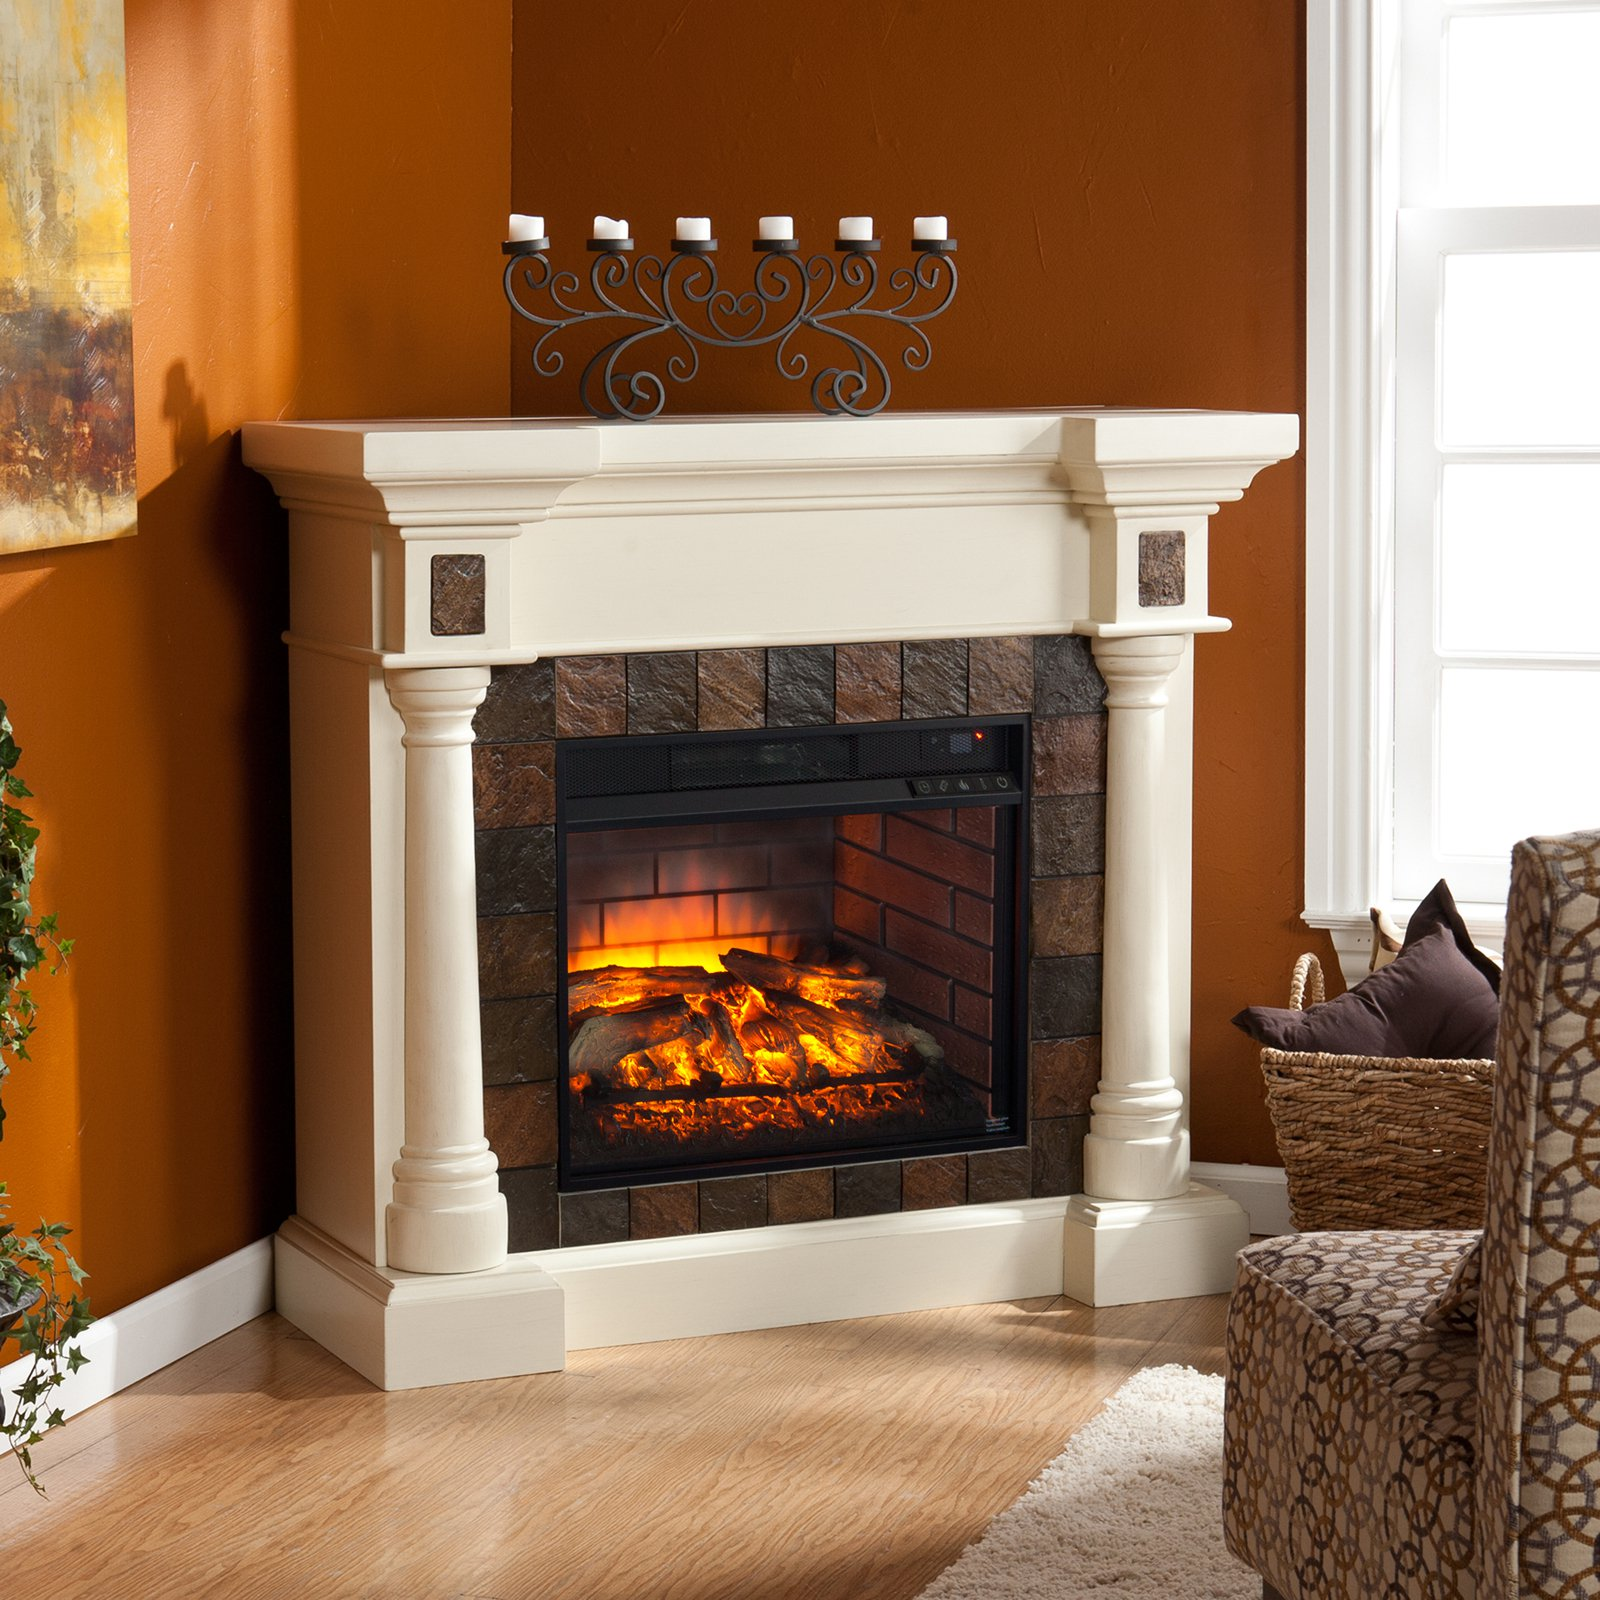 Southern Enterprises Carrington Convertible Infrared Electric Fireplace